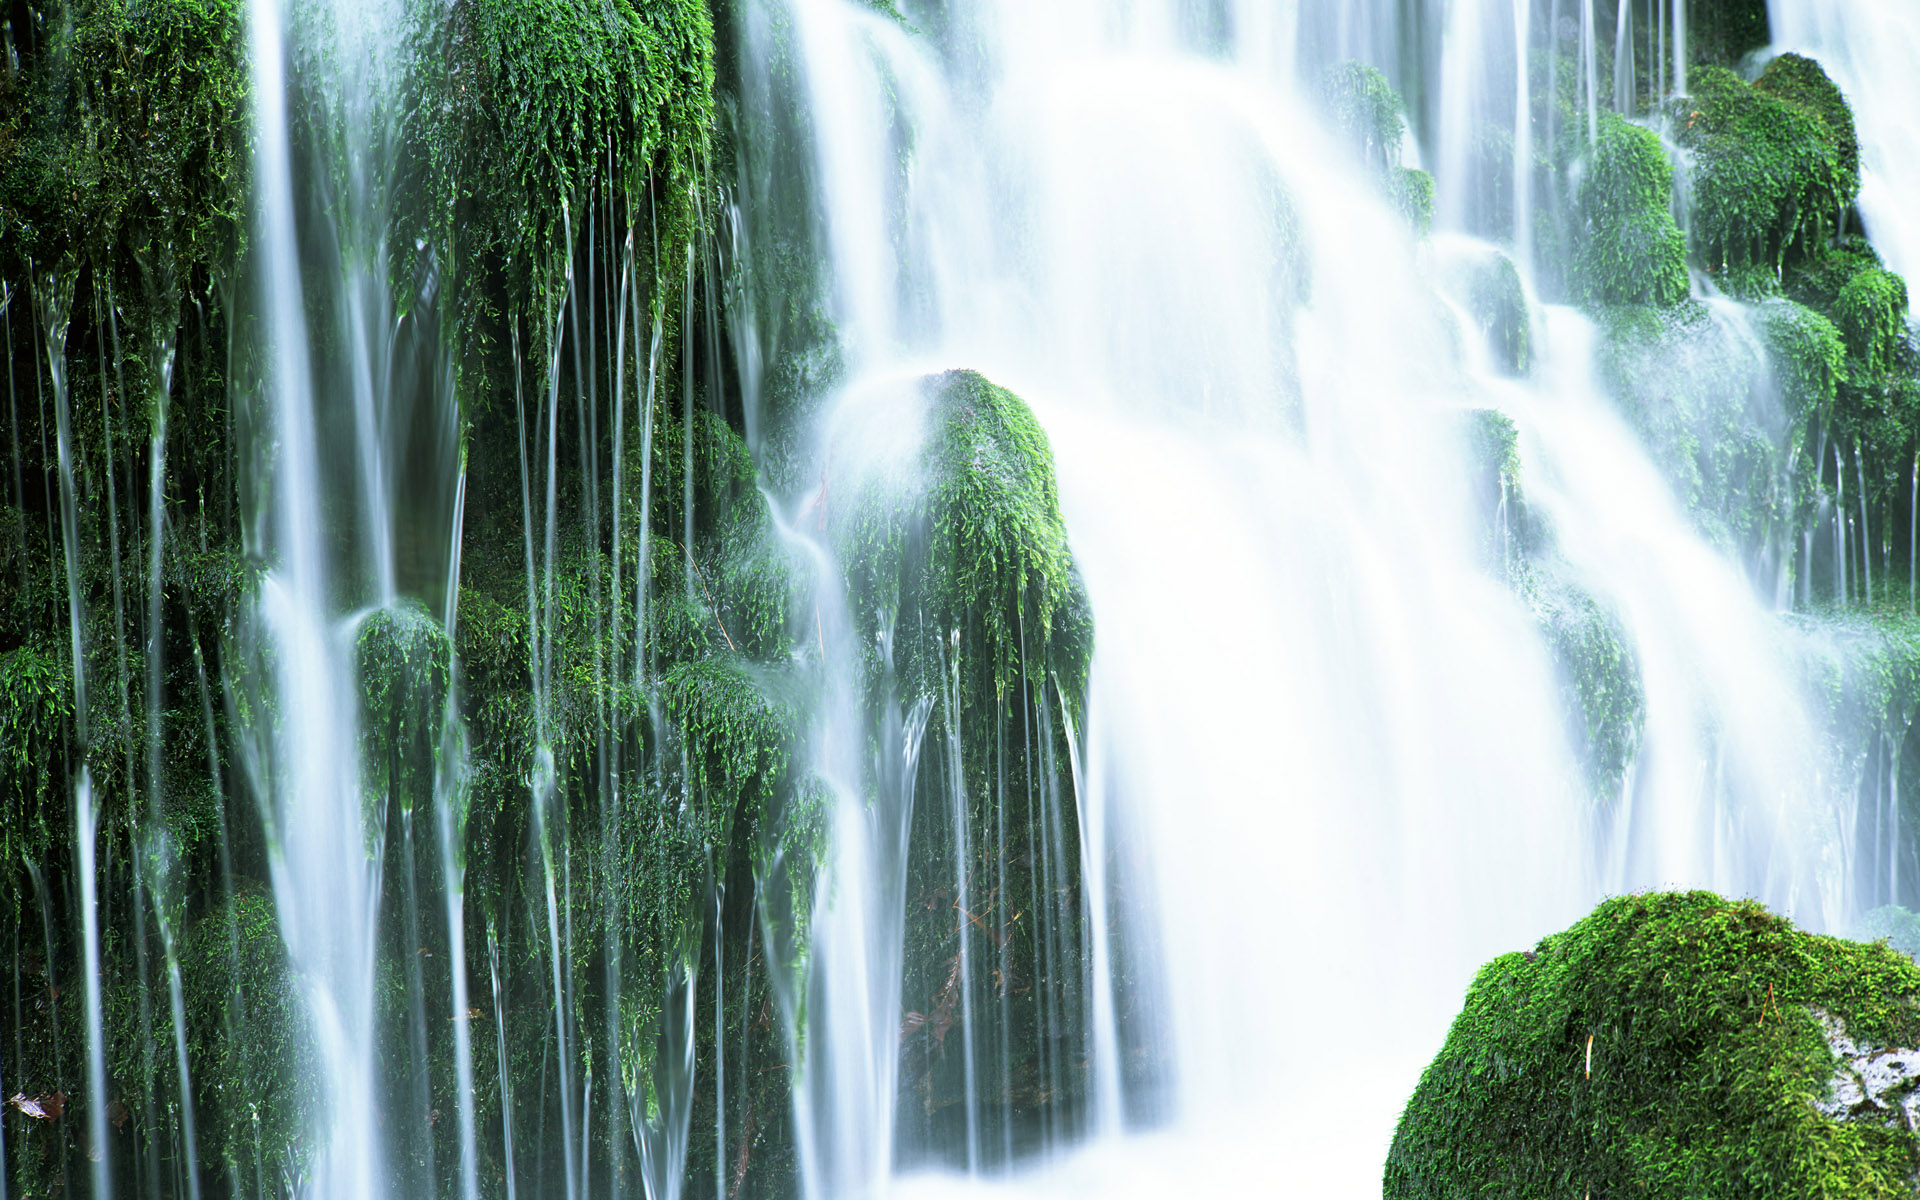 Waterfalls, streams, 3580